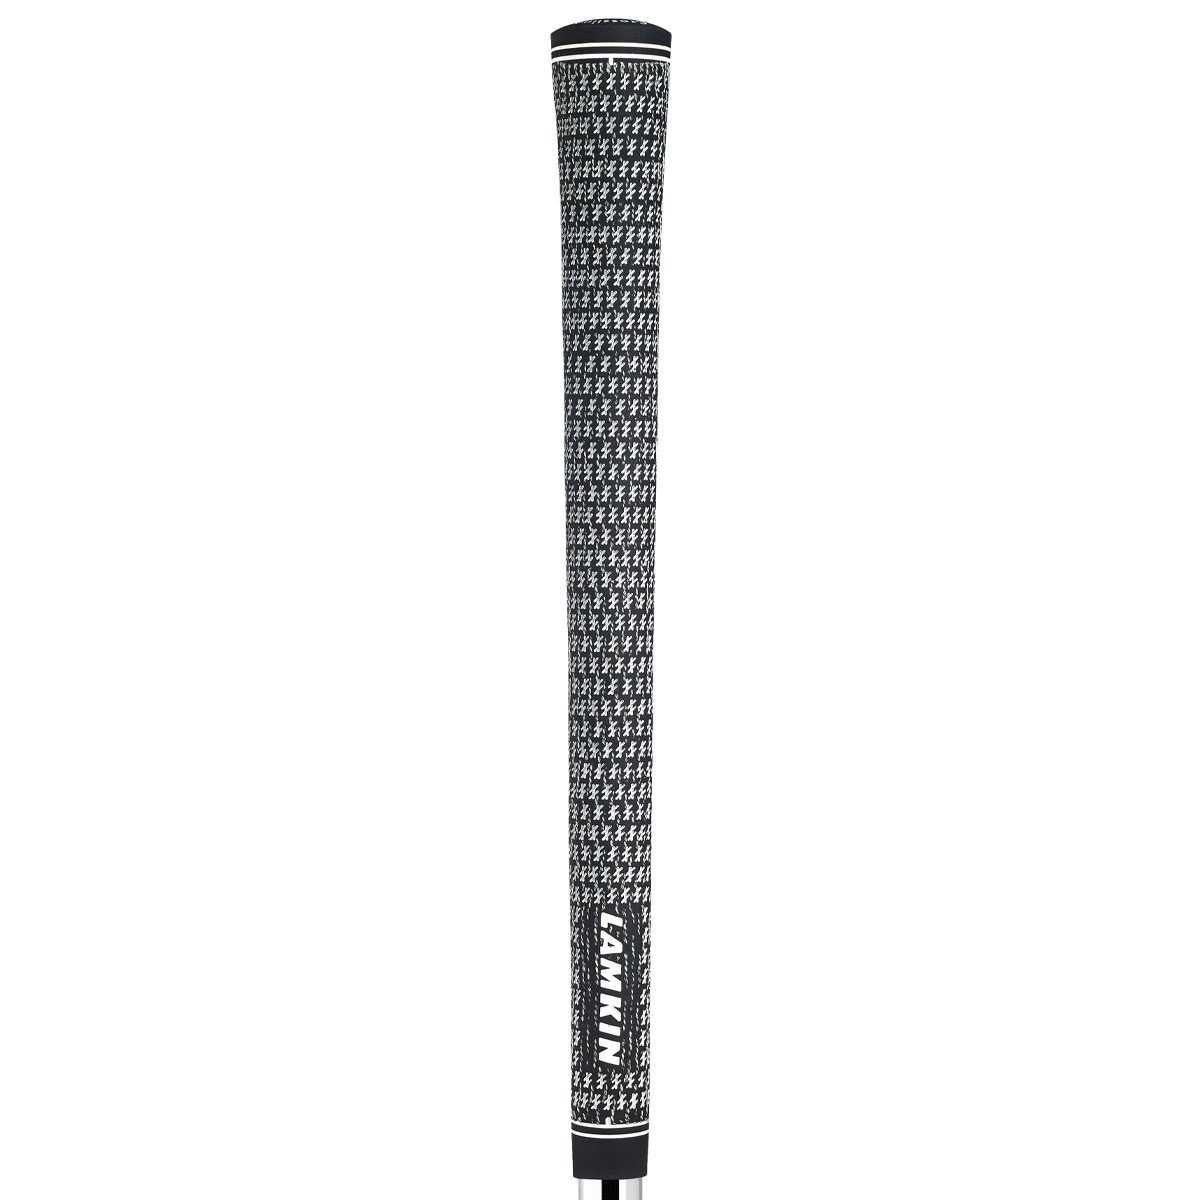 Lamkin Crossline cord Standard 0.580 13 Piece Golf Grip Bundle (